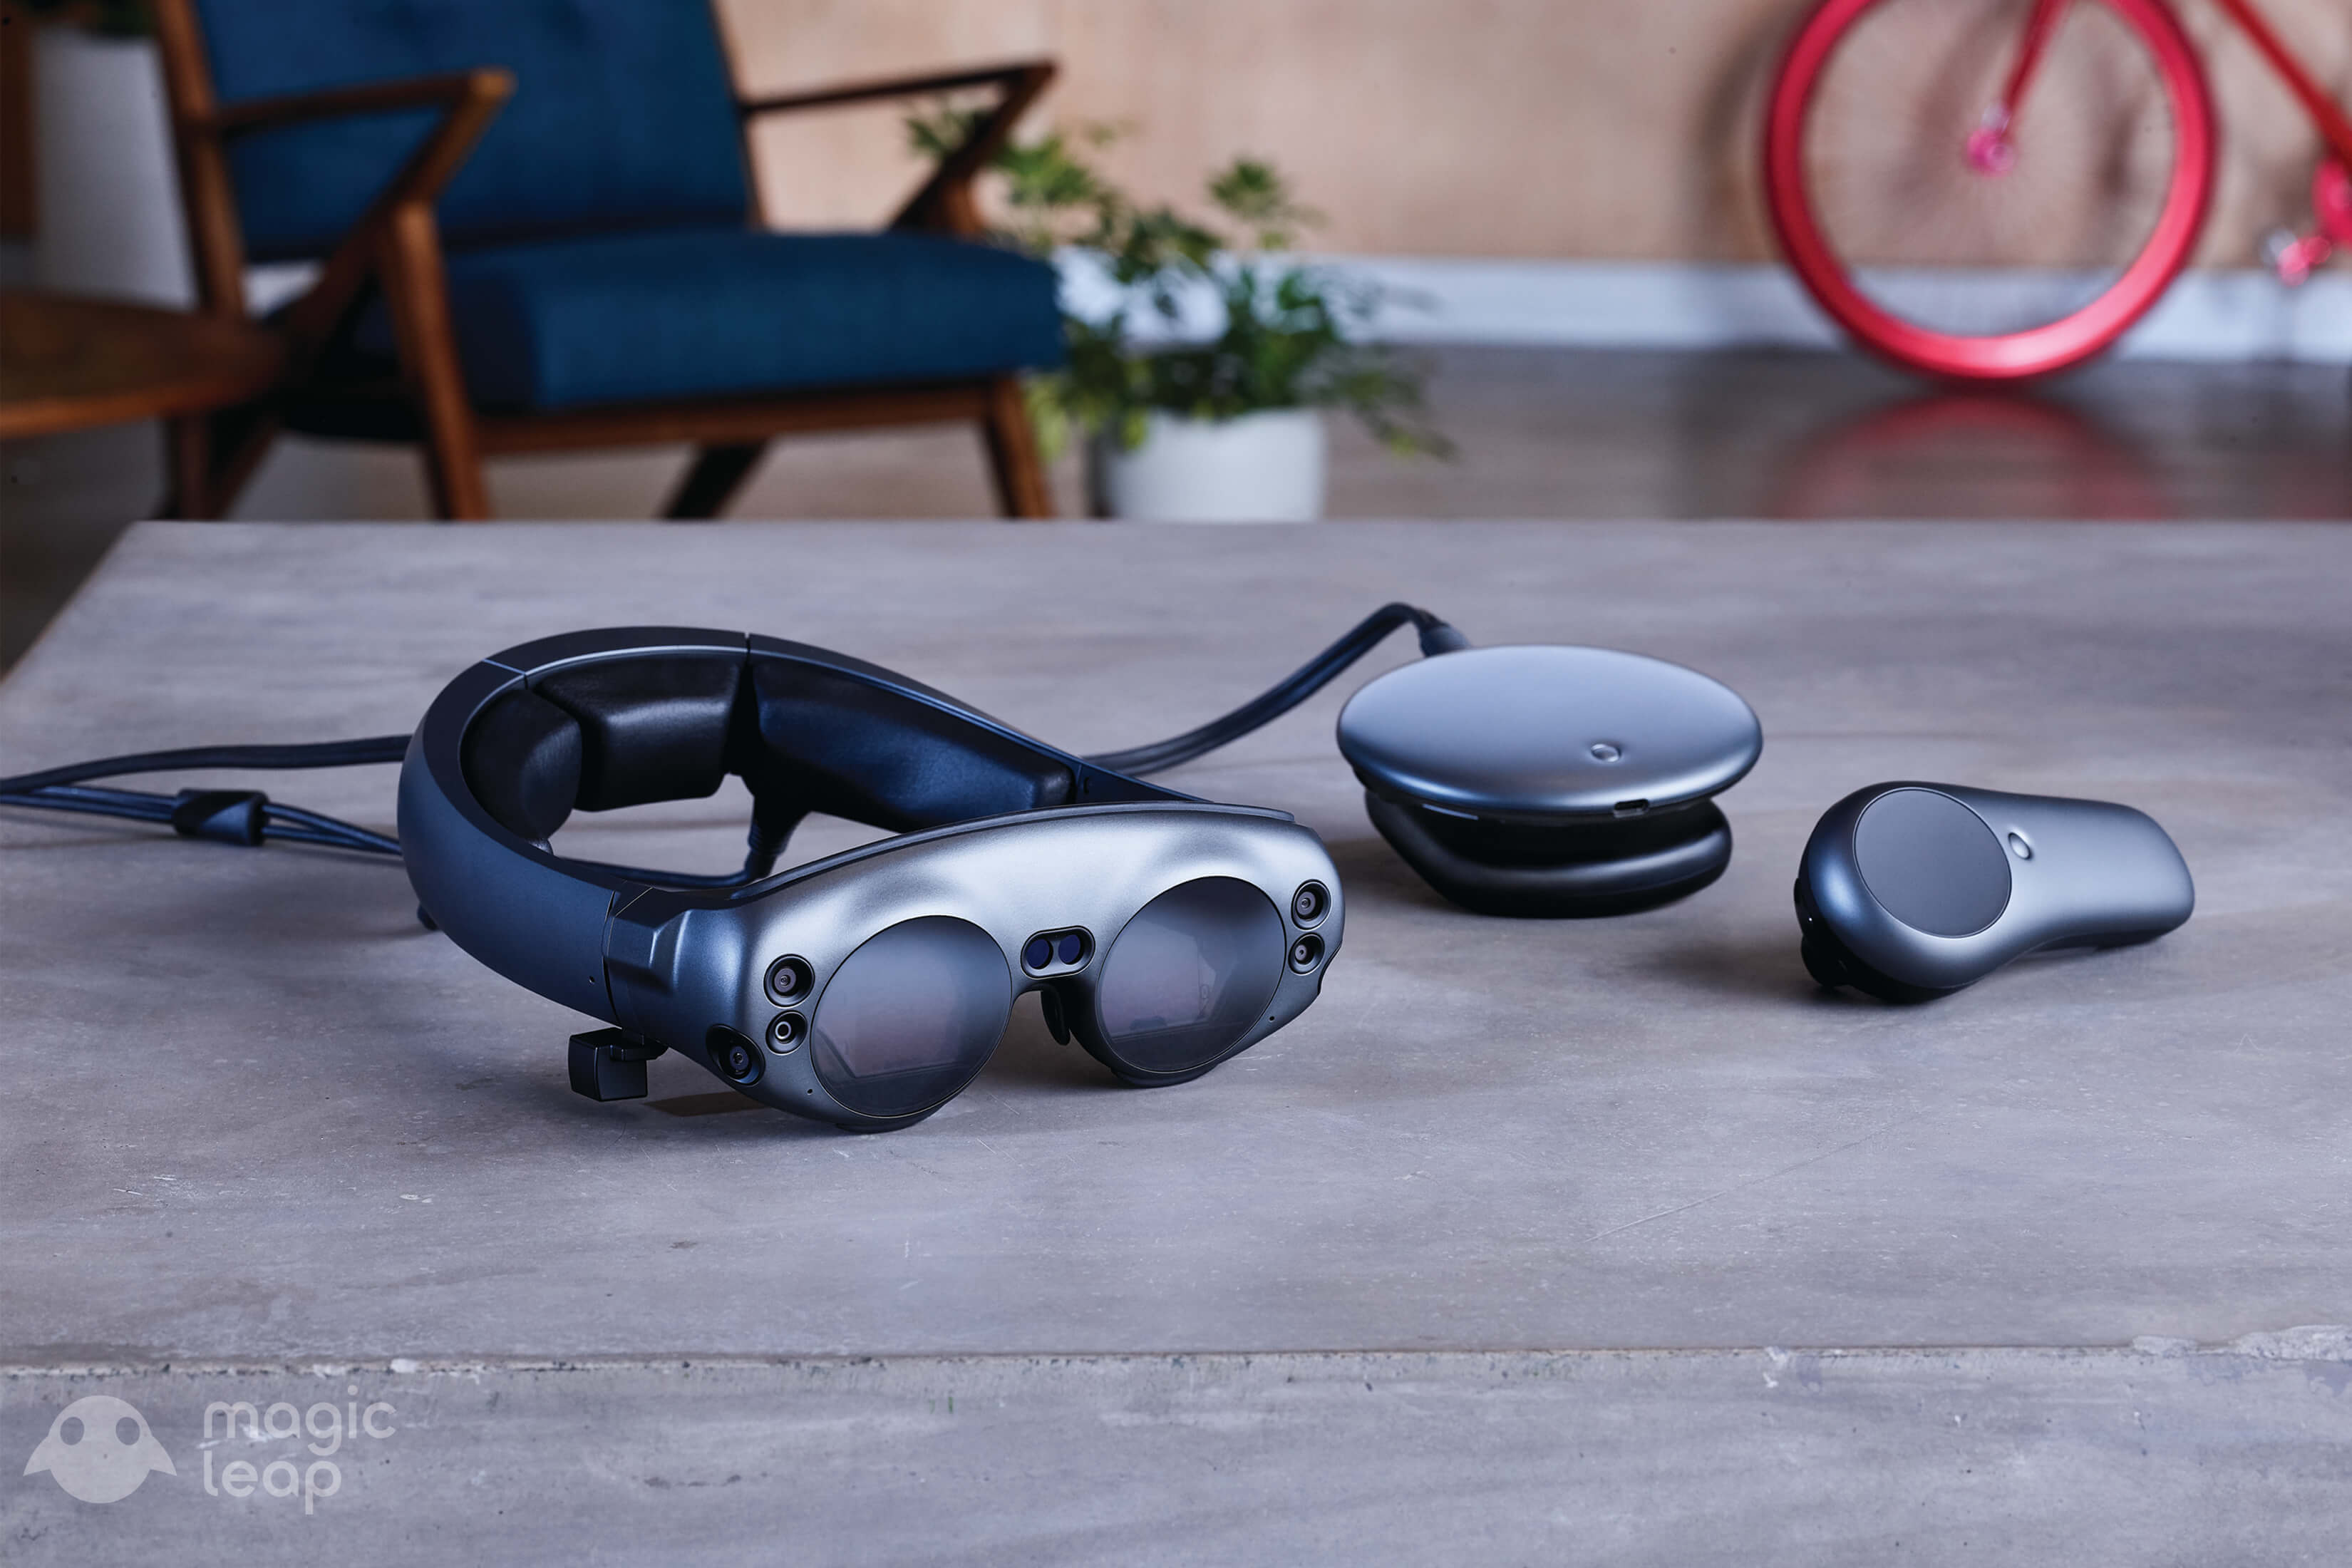 Making AR magic requires mountains of money Magic Leap